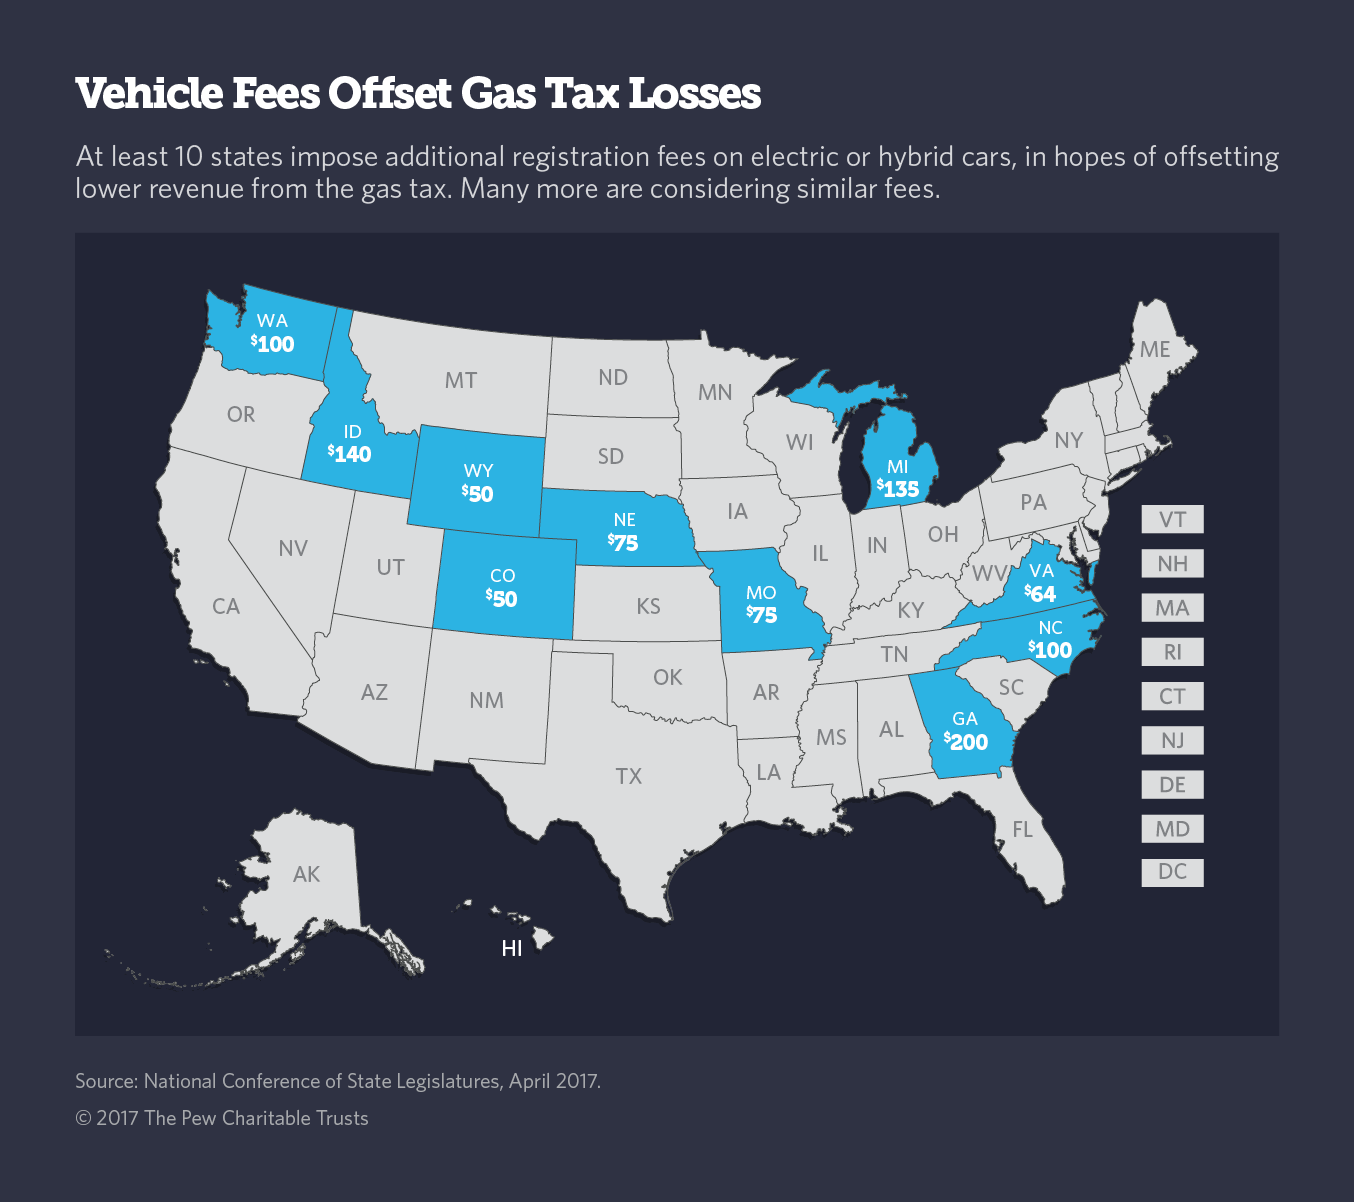 Amid Gas-Tax Revenue Decline, New Fees On Fuel-Efficient